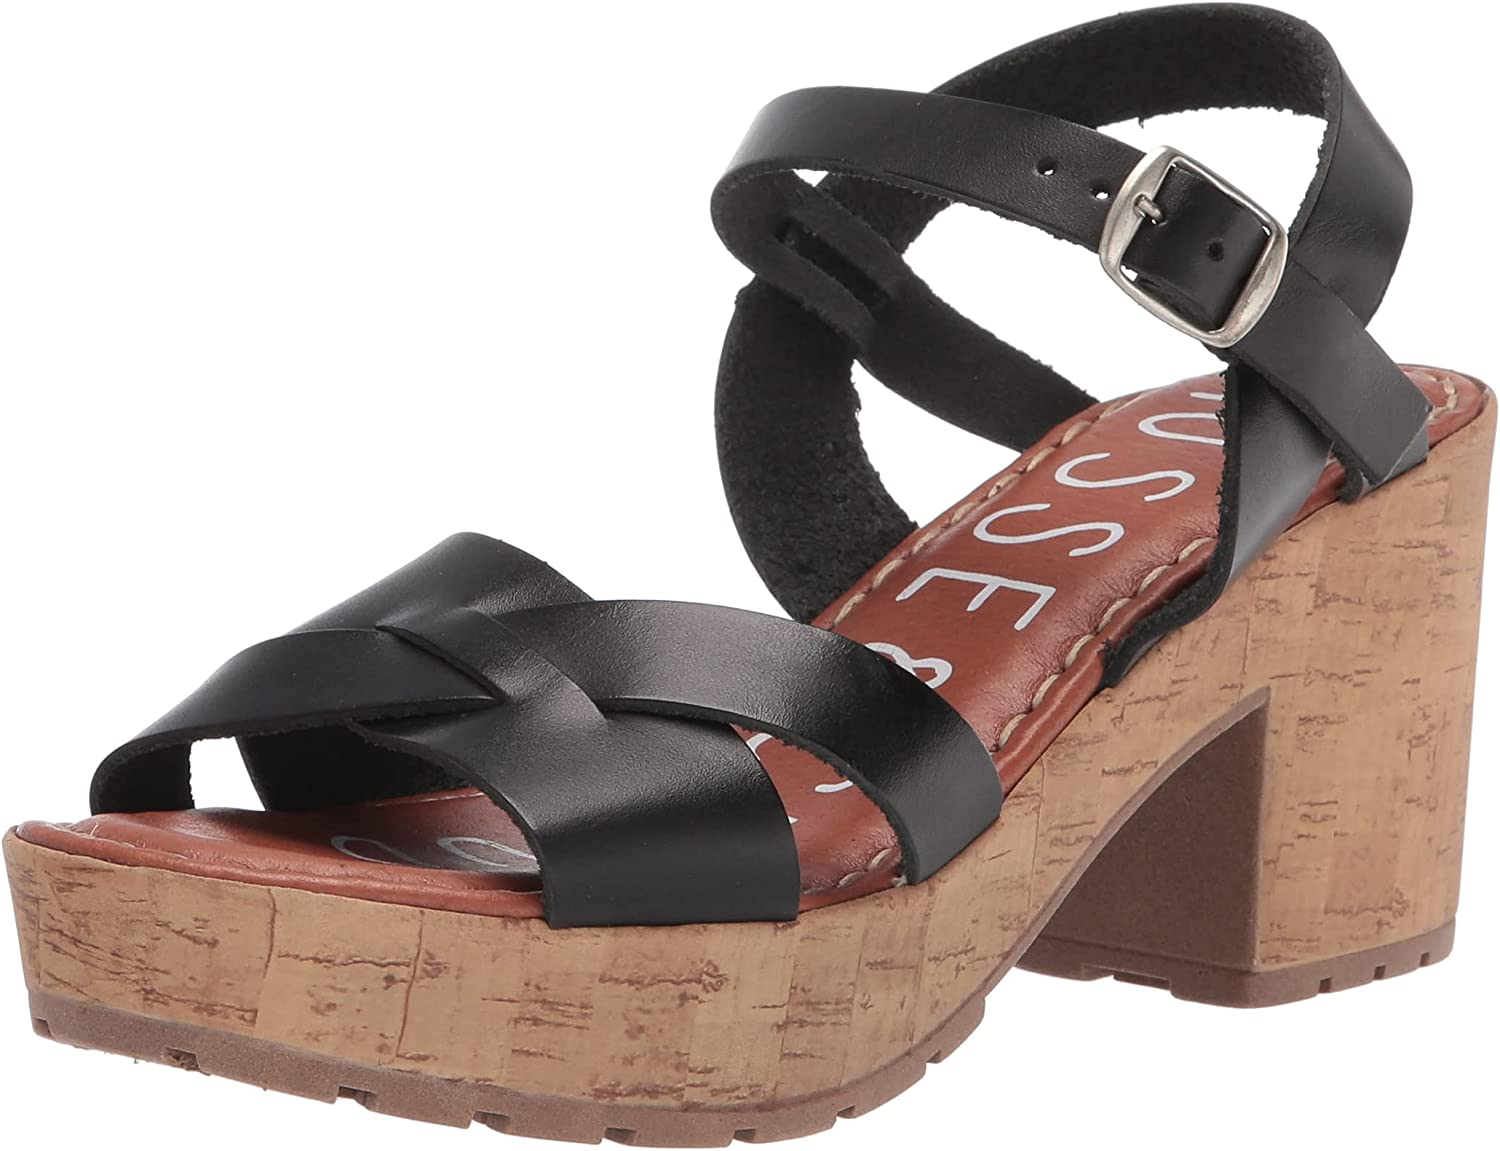 Musse Cloud Women's Virginia Beach Mall Max 90% OFF Ankle-Strap Heeled Sandal